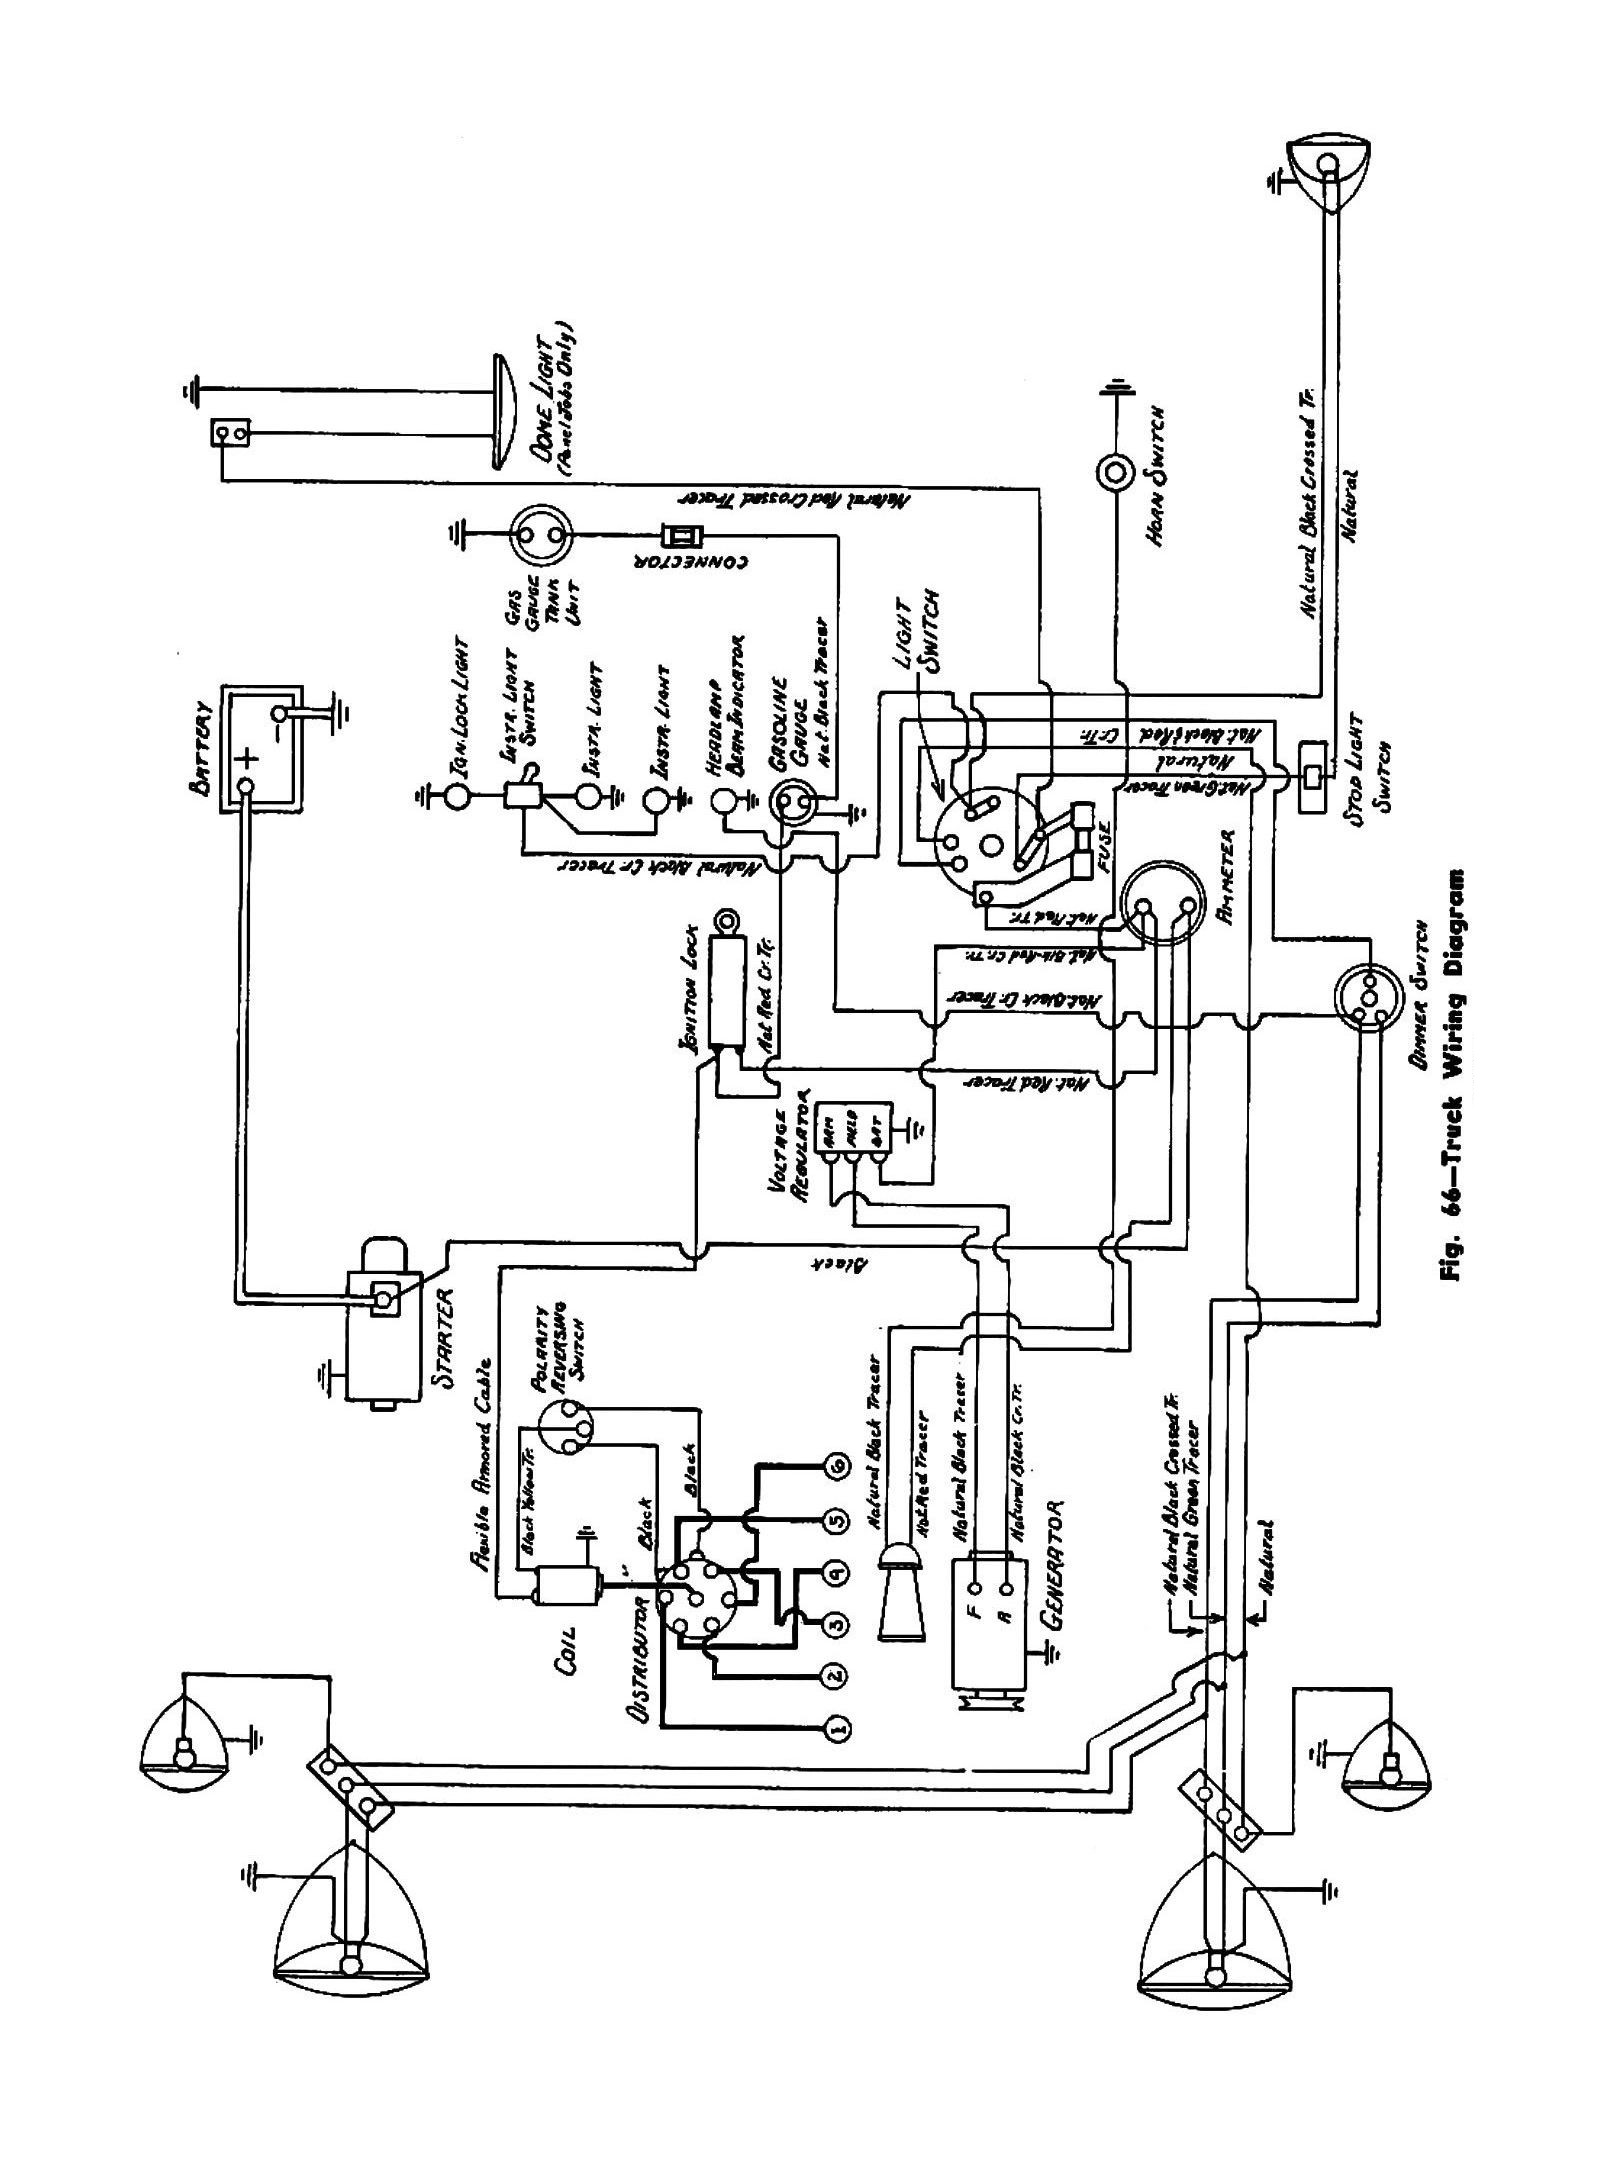 international truck electrical diagrams wiring diagram